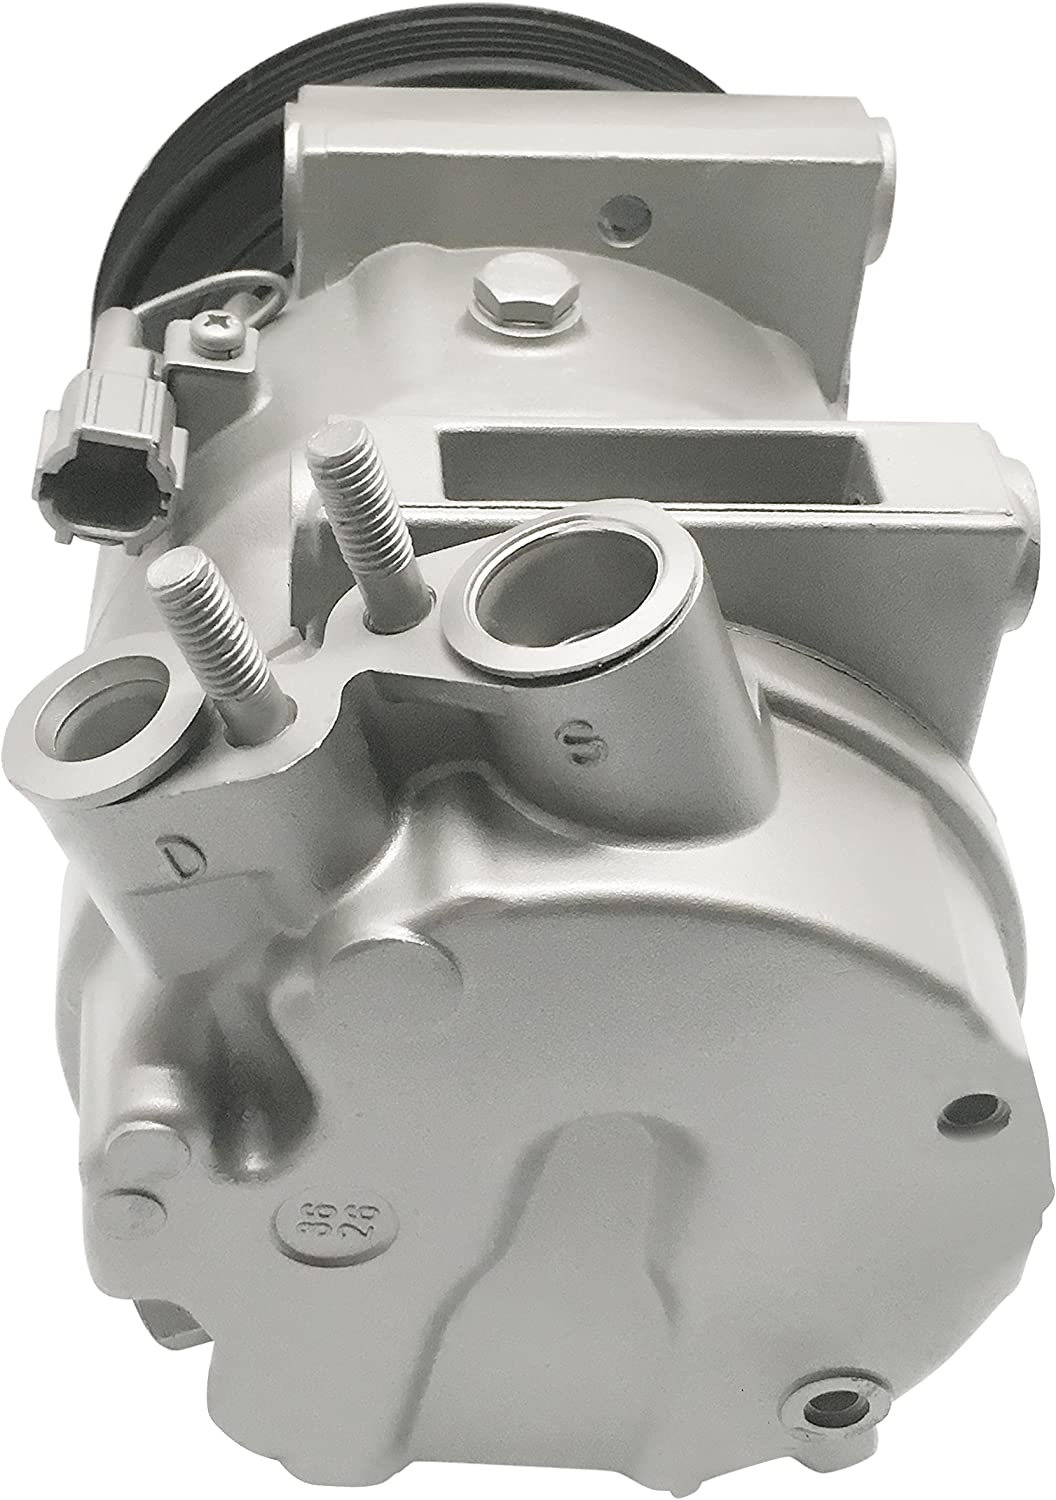 RYC Remanufactured AC Compressor and A//C Clutch EG423 ONLY FITS Nissan Pathfinder 3.3L 1996, 1997, and 1998